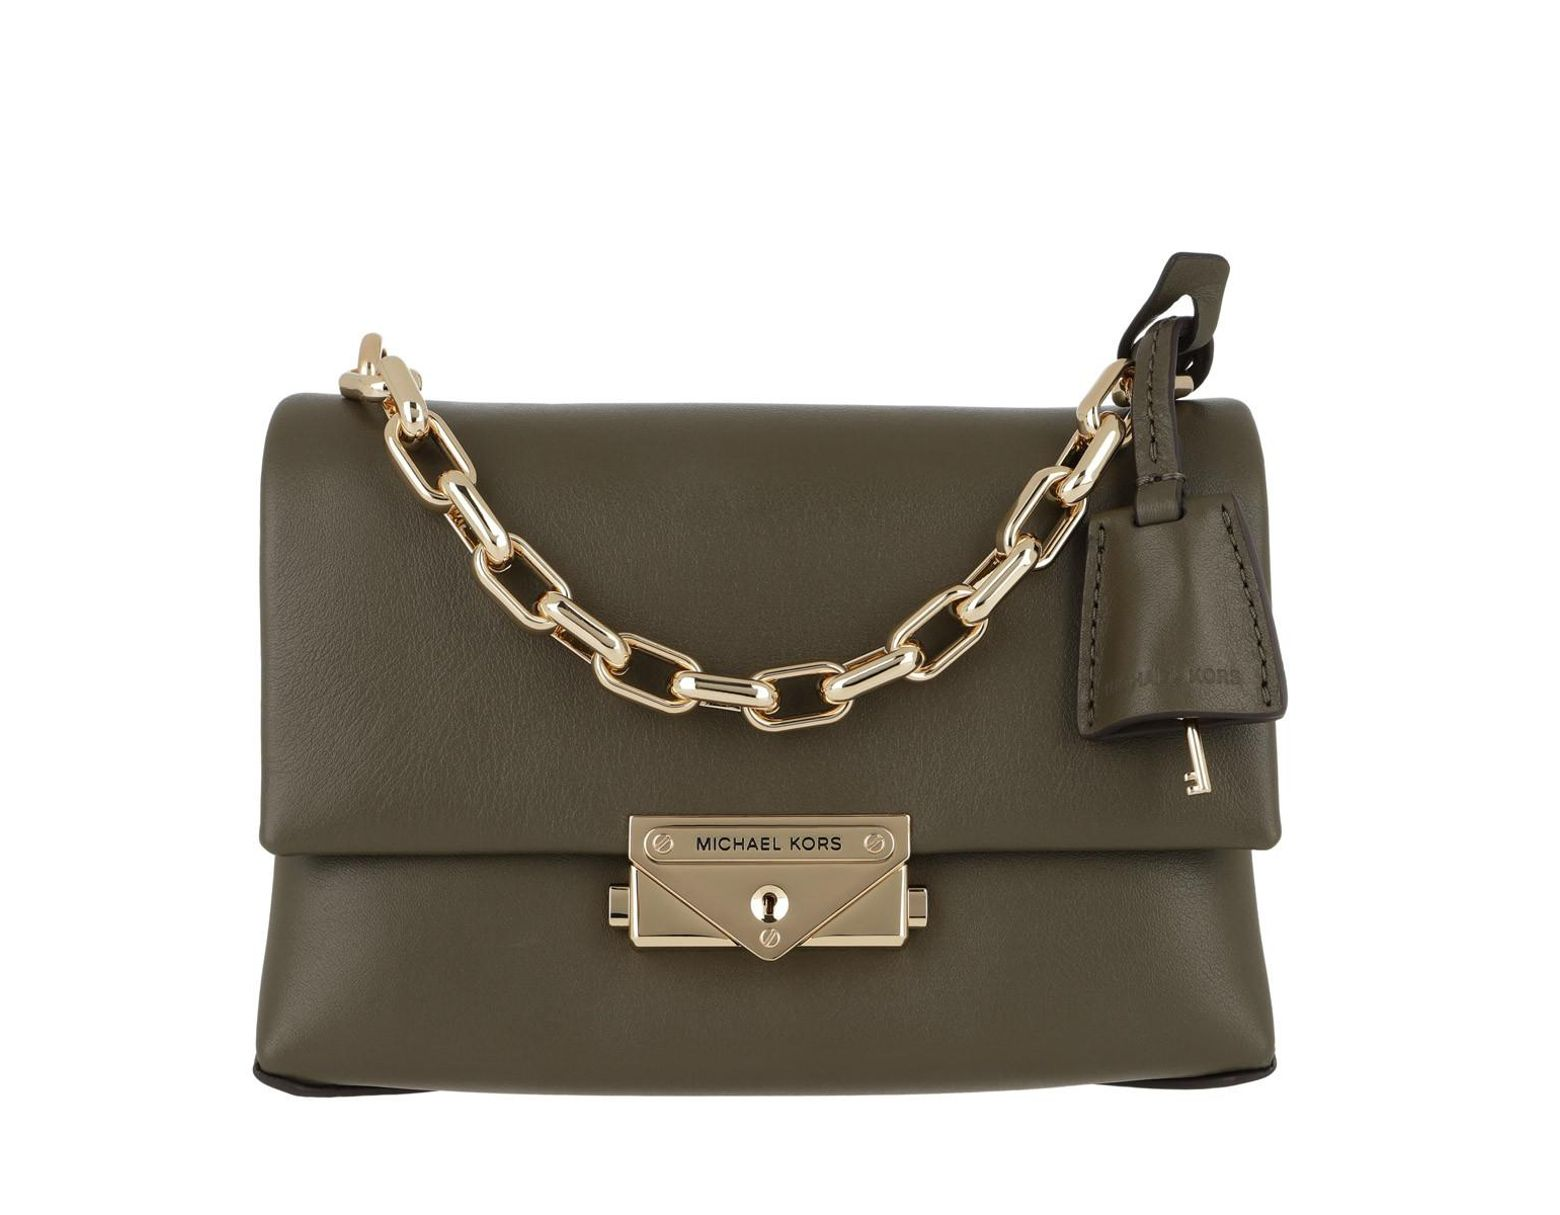 935ed27112 Michael Kors Cece Extra Small Chain Crossbody Bag Olive in Green - Lyst